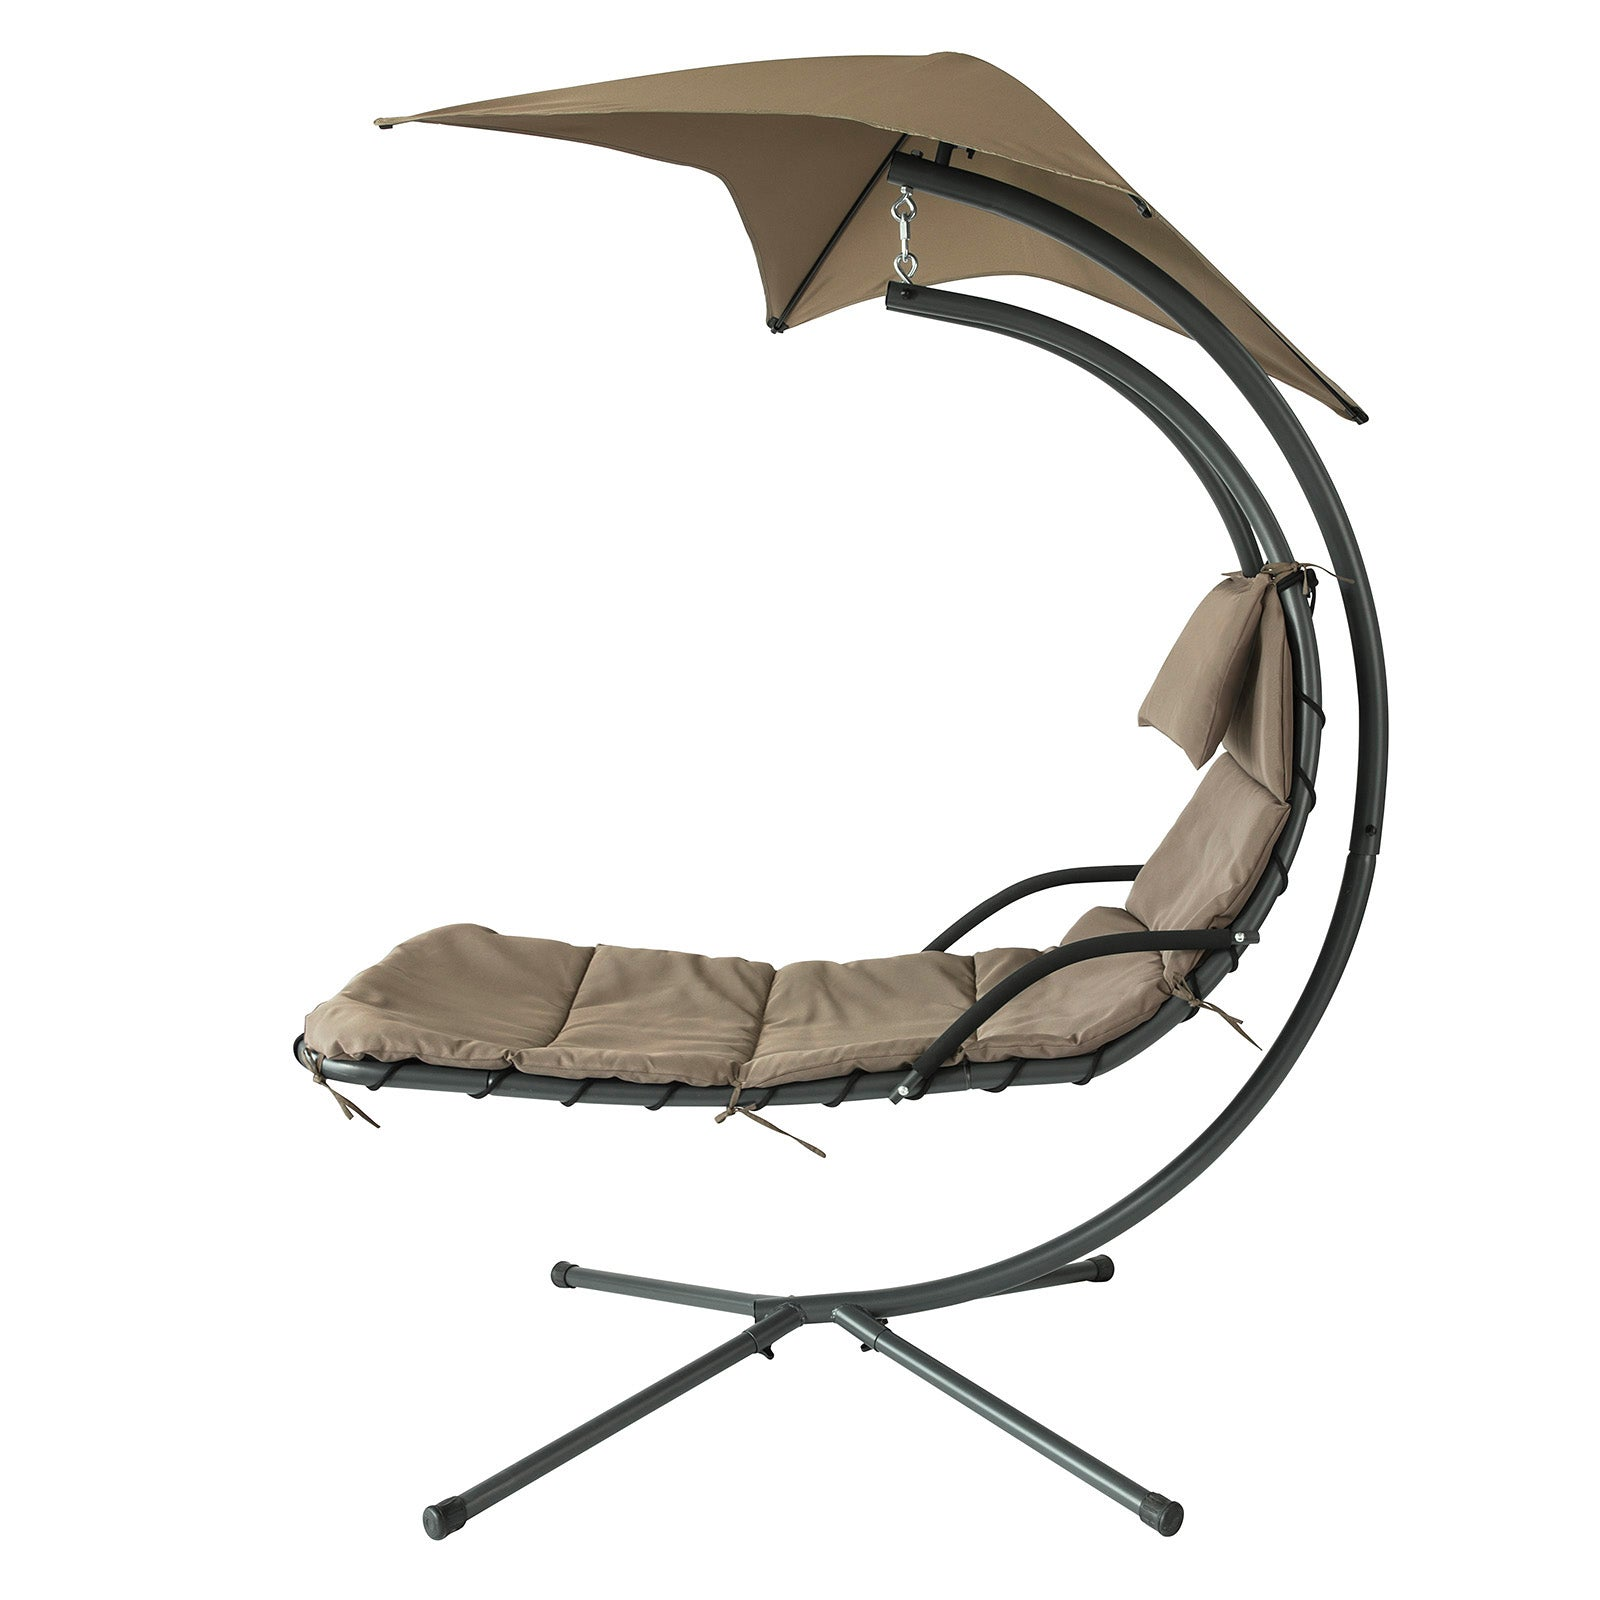 SoBuy Garden and Home Rocking Chair Metal Sun Lounger with Leaf Canopy and Cushion Included OGS39-BR